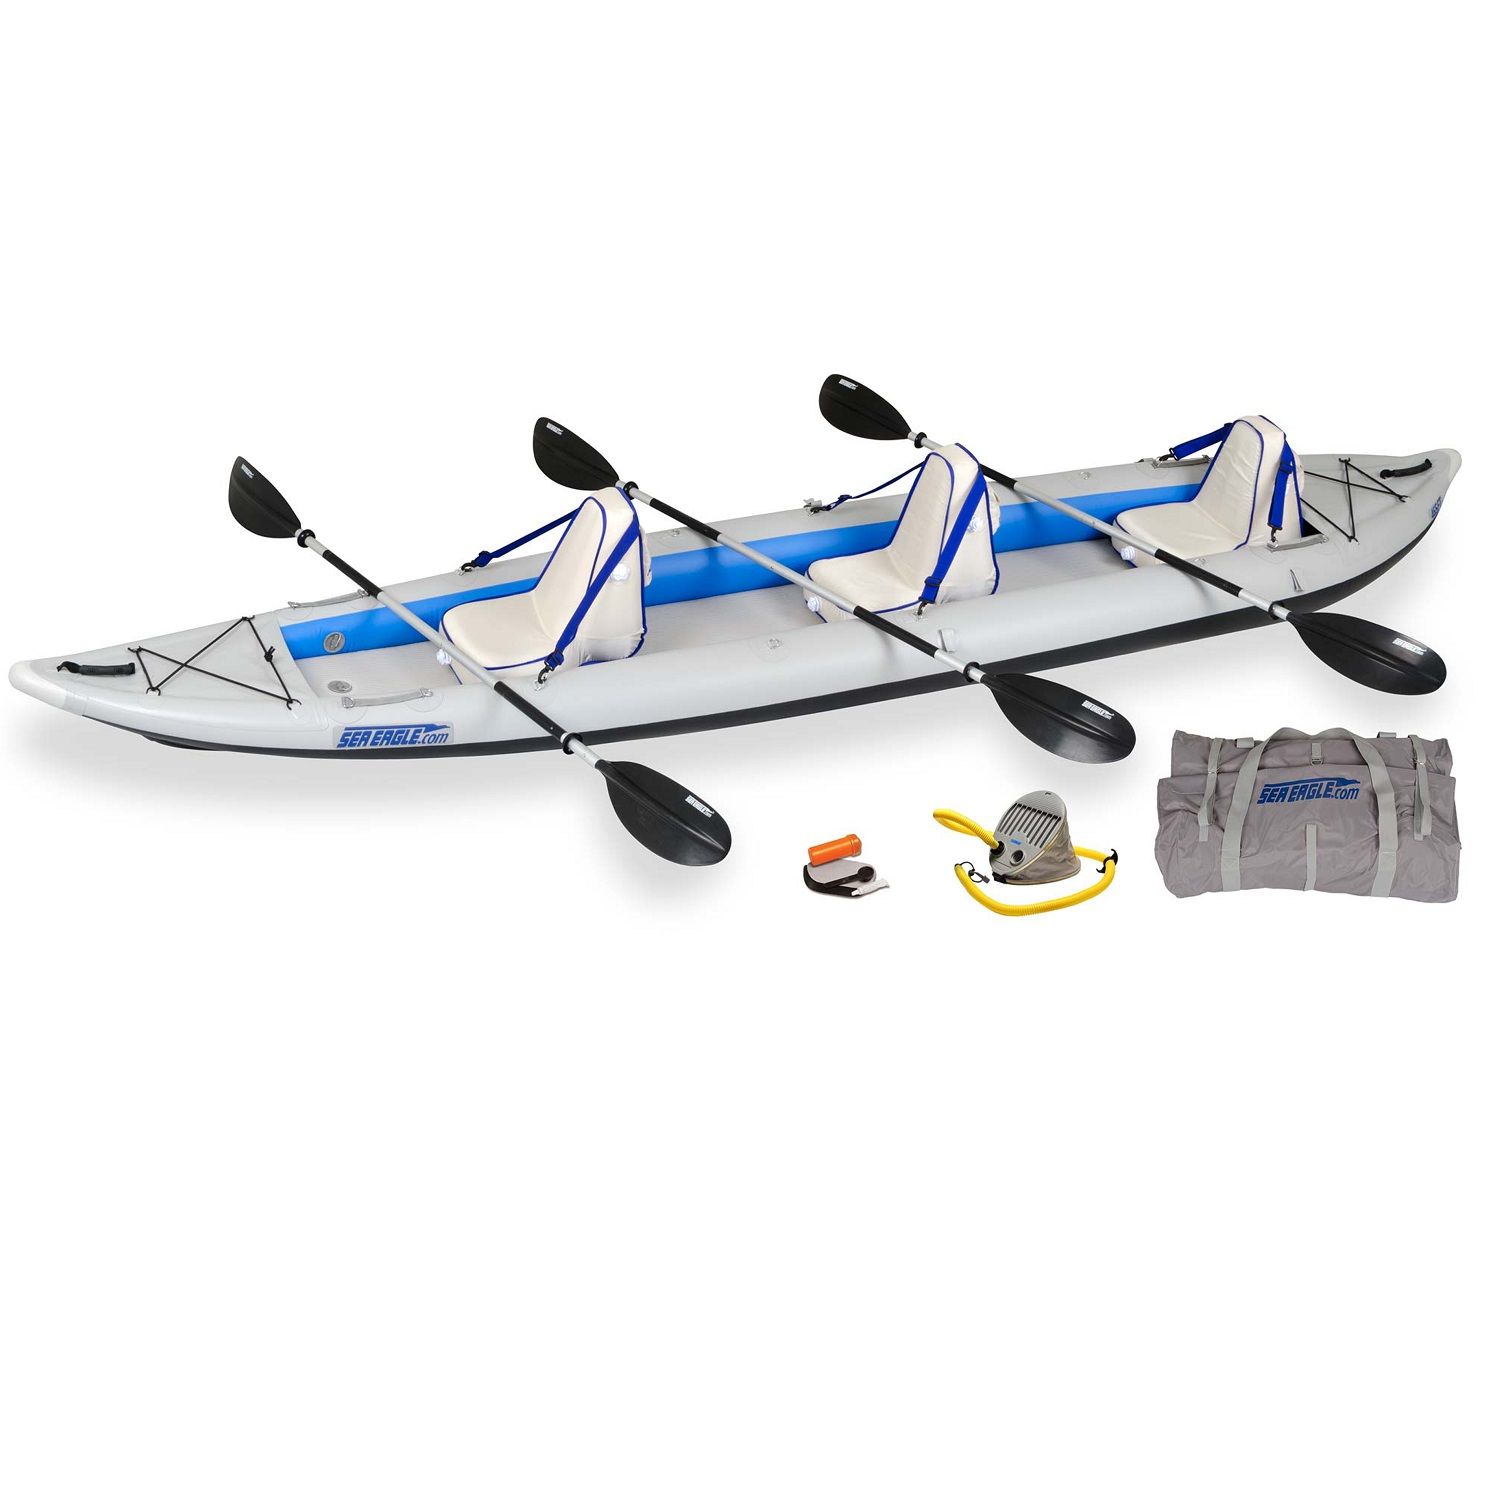 Sea Eagle FastTrack 465FTK Inflatable Kayak Deluxe by Sea Eagle